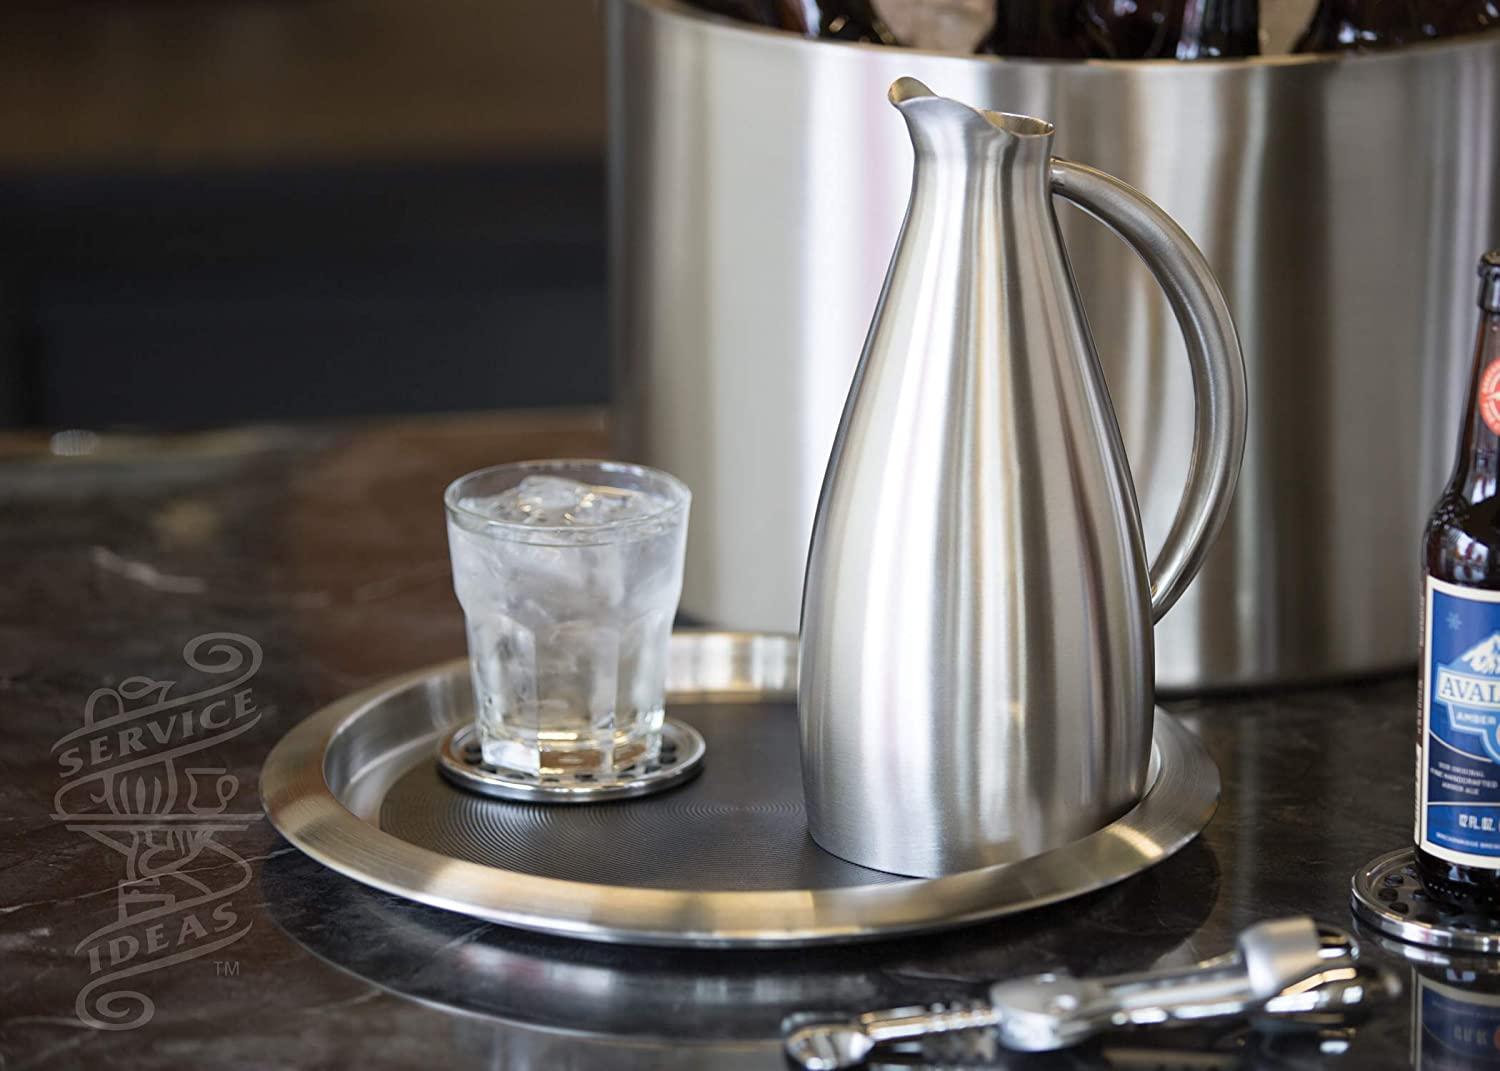 Brushed Stainless//Black Insert Service Ideas TR1412SR 14 Non-Slip Round Tray